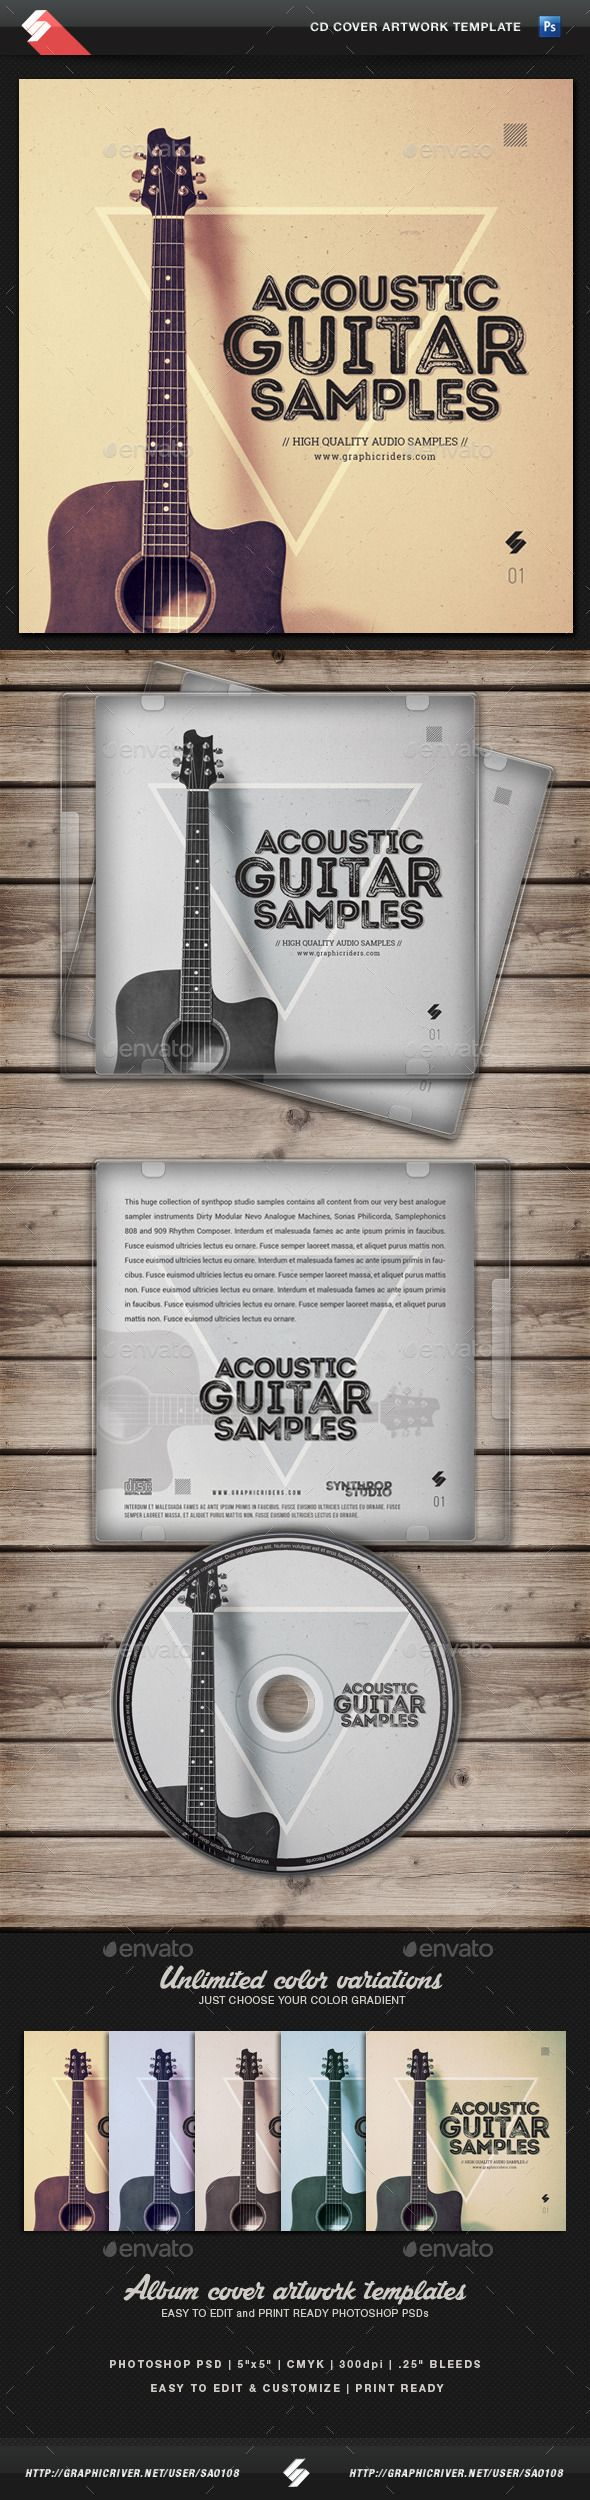 Acoustic Guitar Samples - CD Cover Template